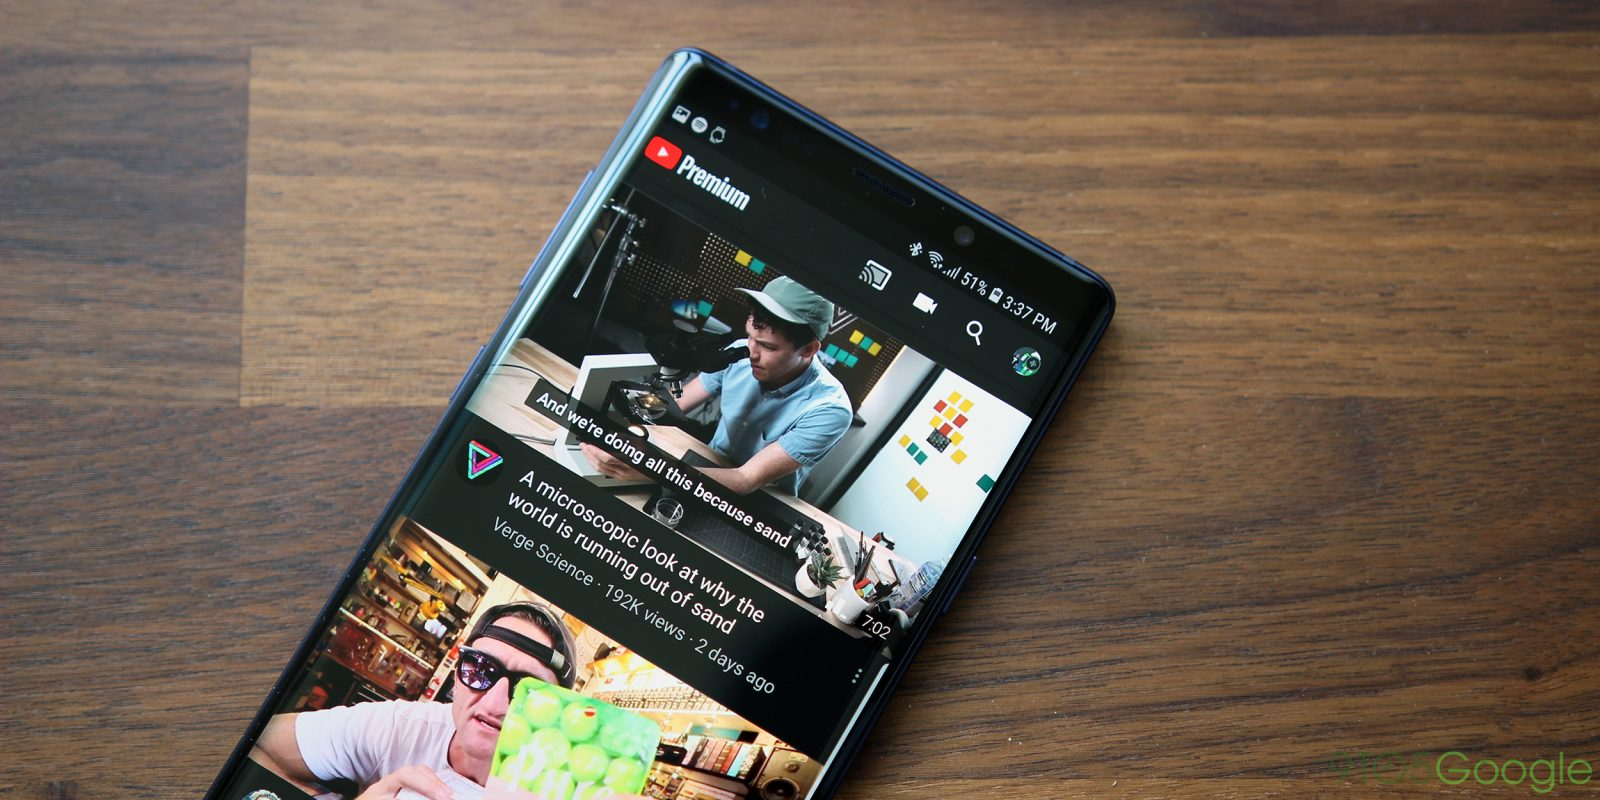 YouTube voice search gets new UI and 'show me' command to navigate Android app